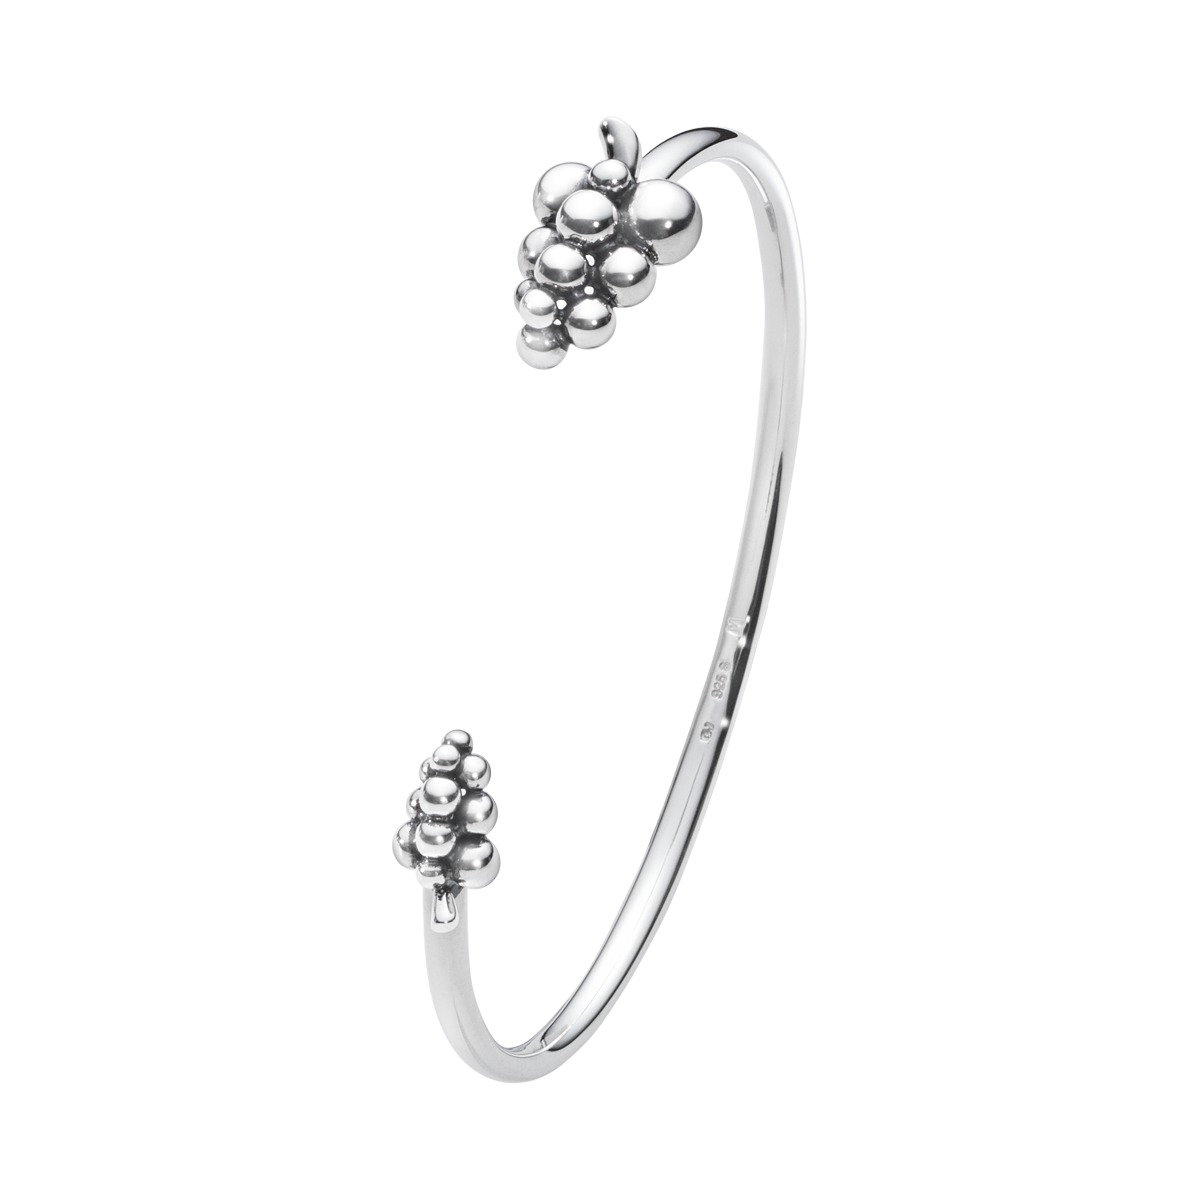 Georg Jensen MOONLIGHT GRAPES armring - 3531195 Armring størrelse L